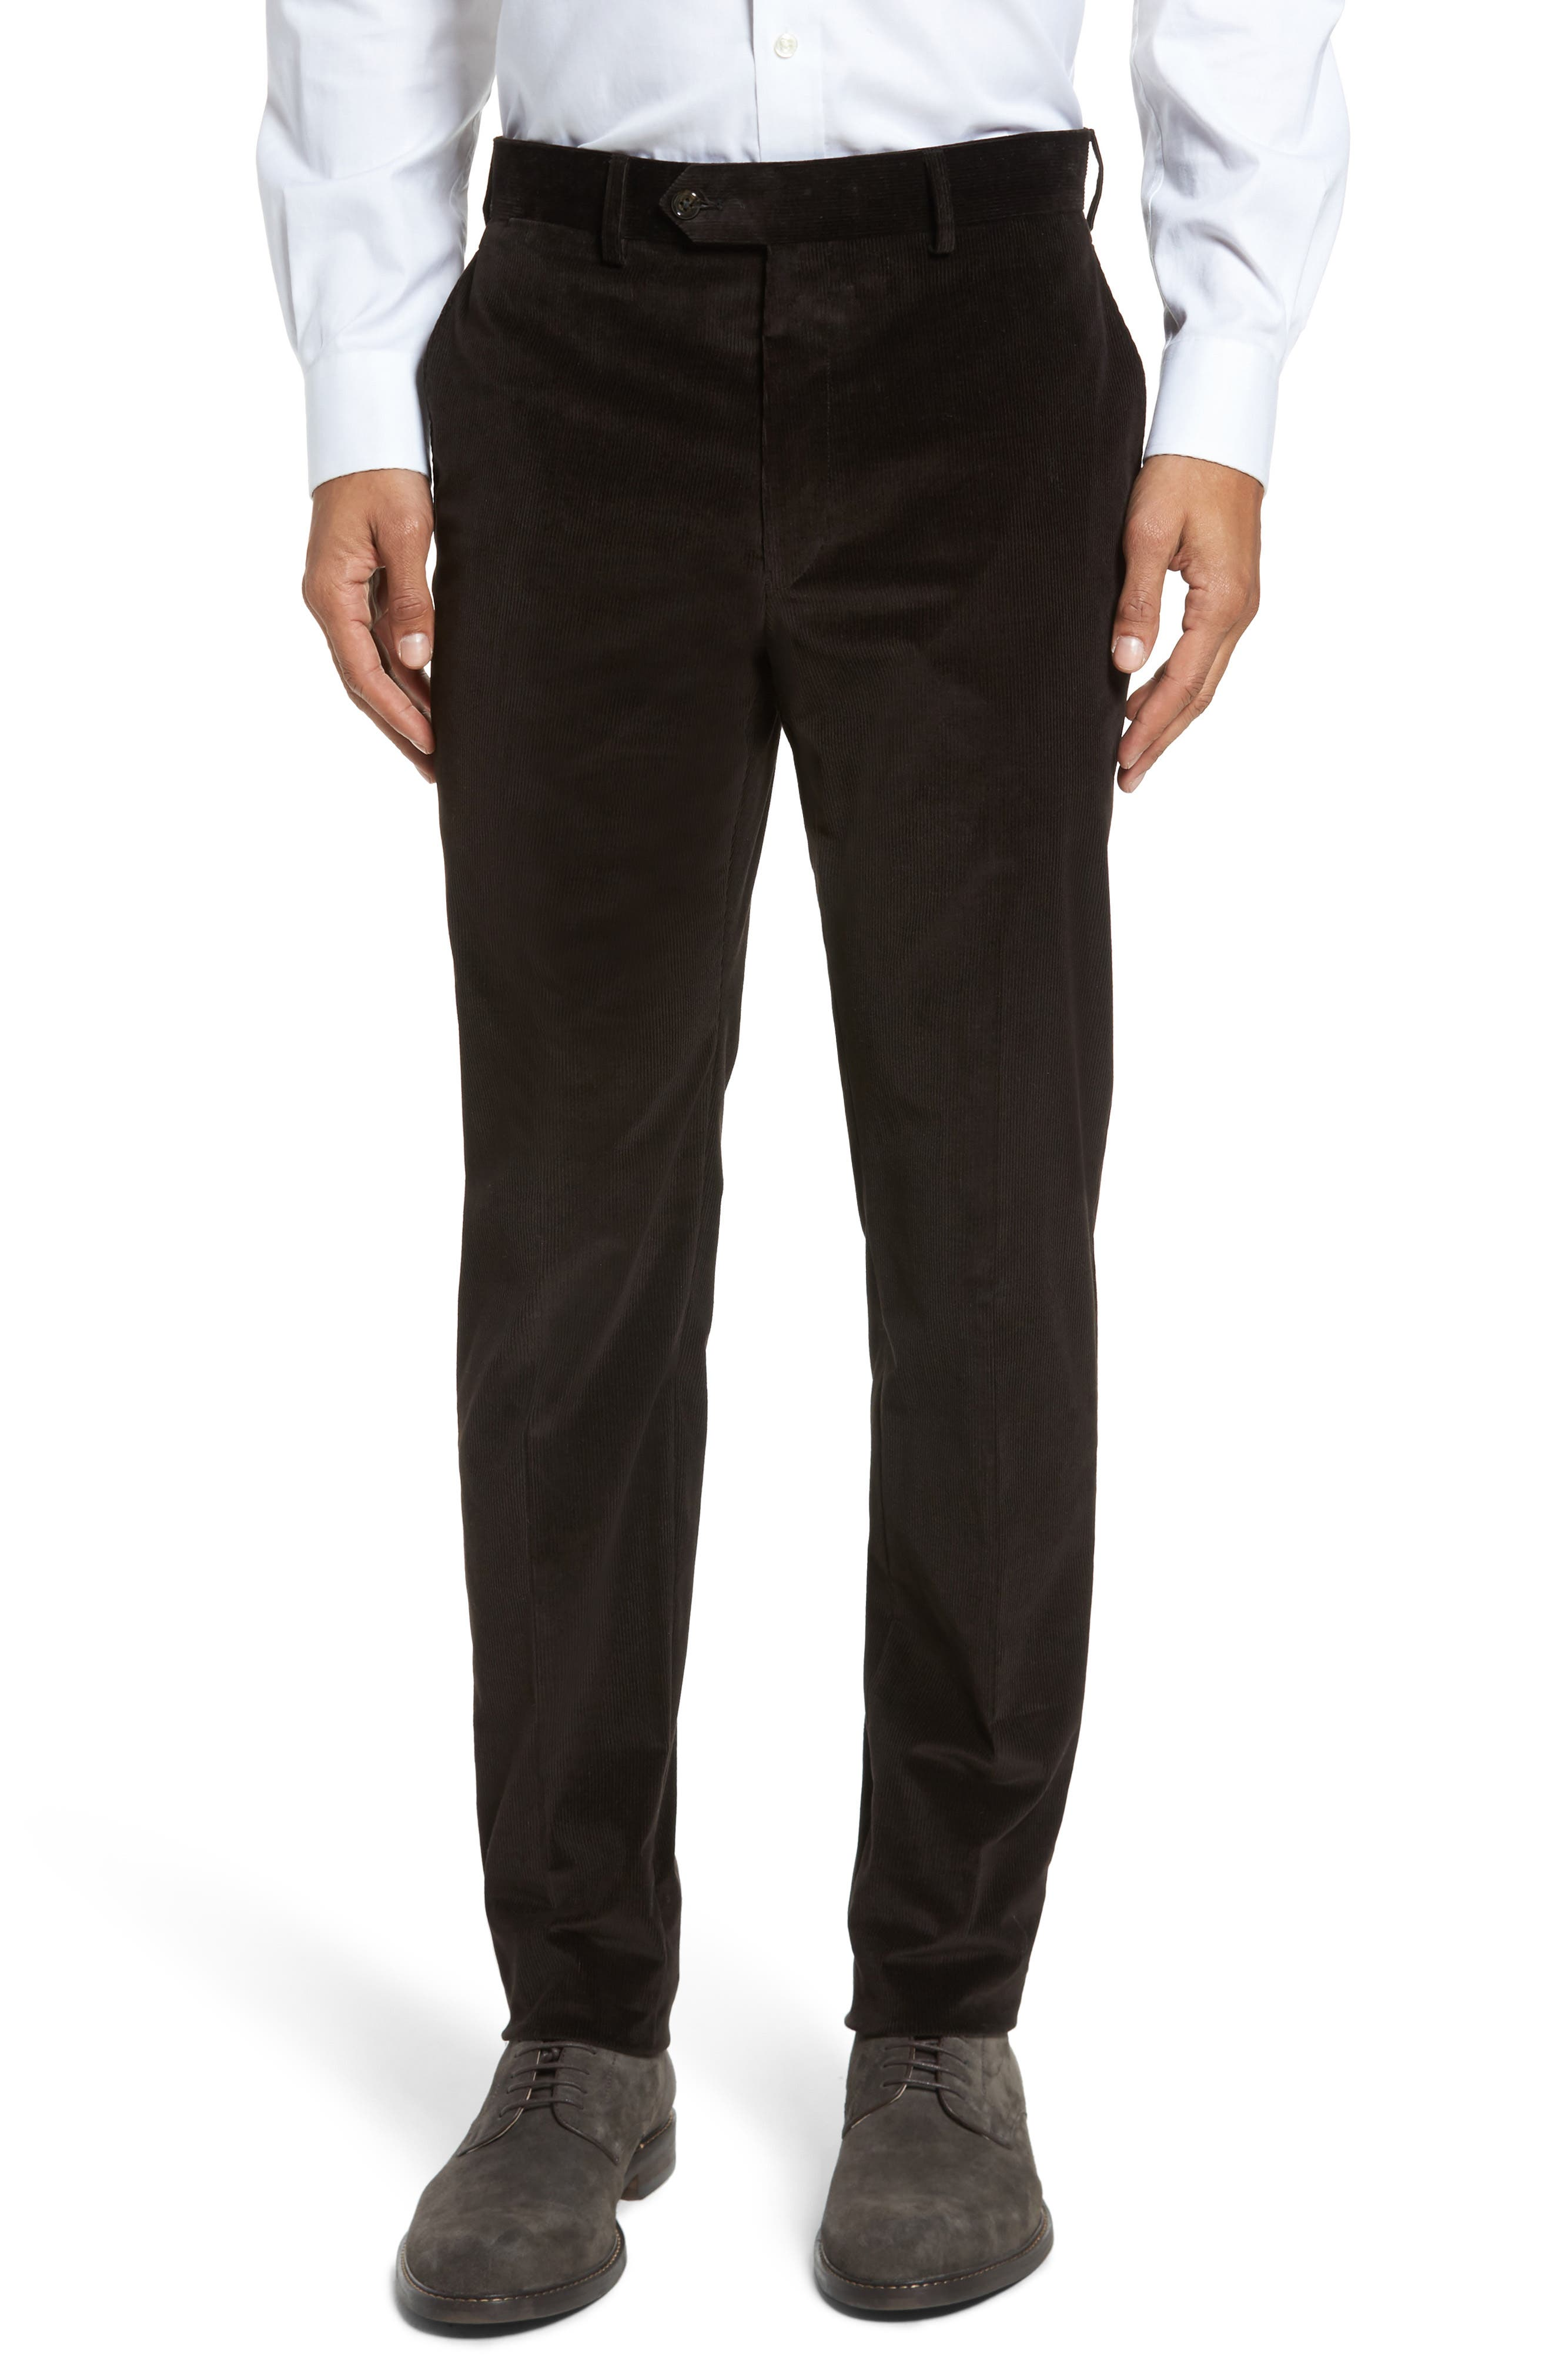 Todd Snyder White Label Sutton Flat Front Stretch Cotton Corduroy Trousers